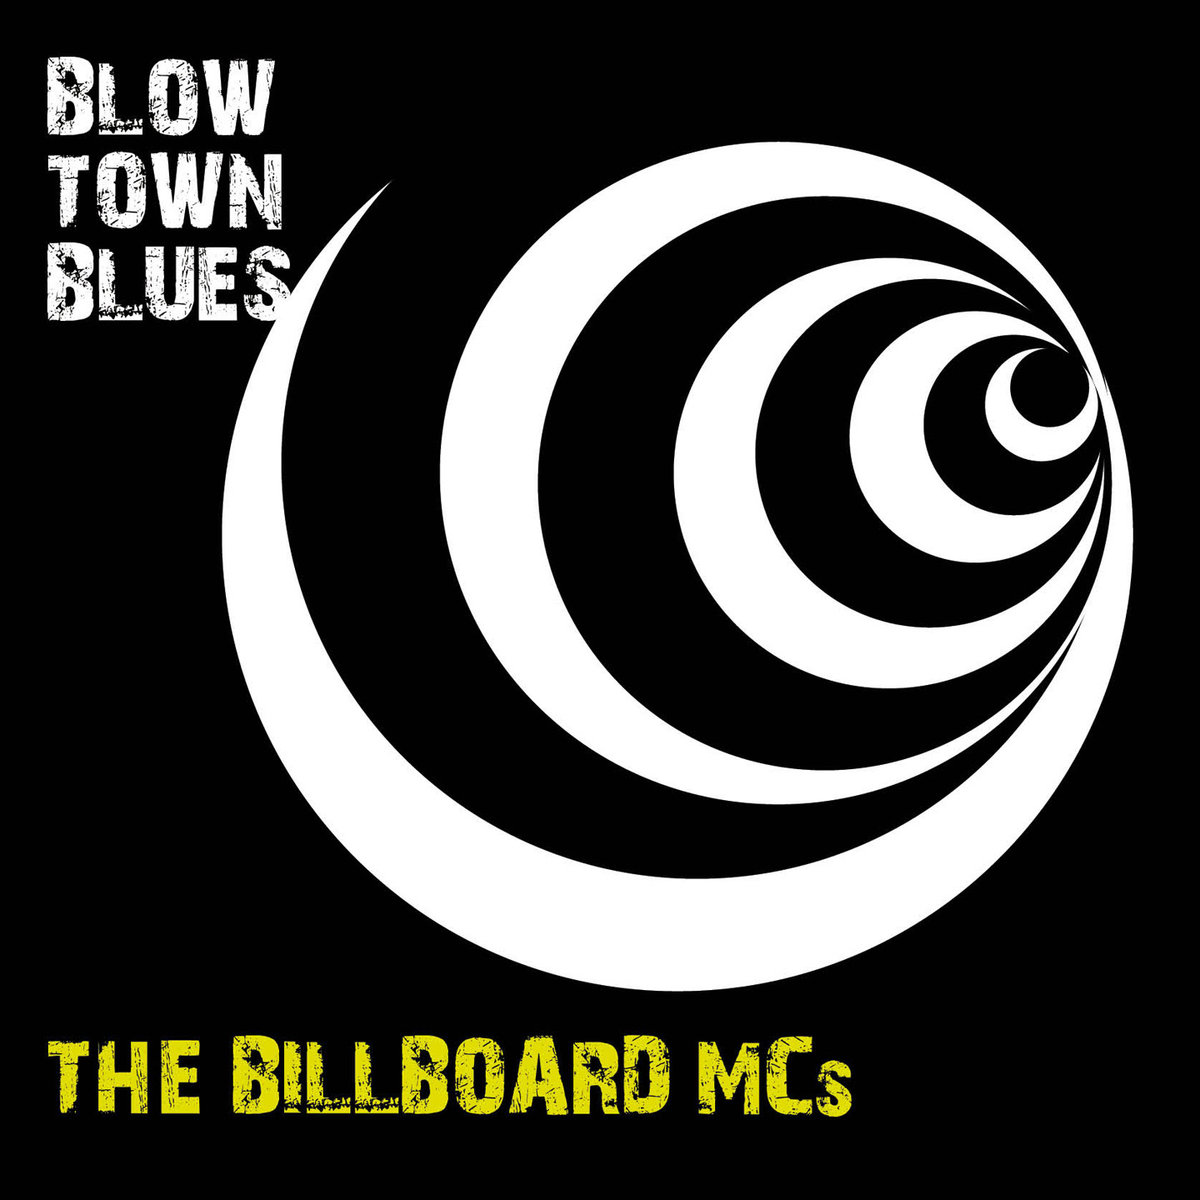 The Billboards MCs - Blow Town Blues